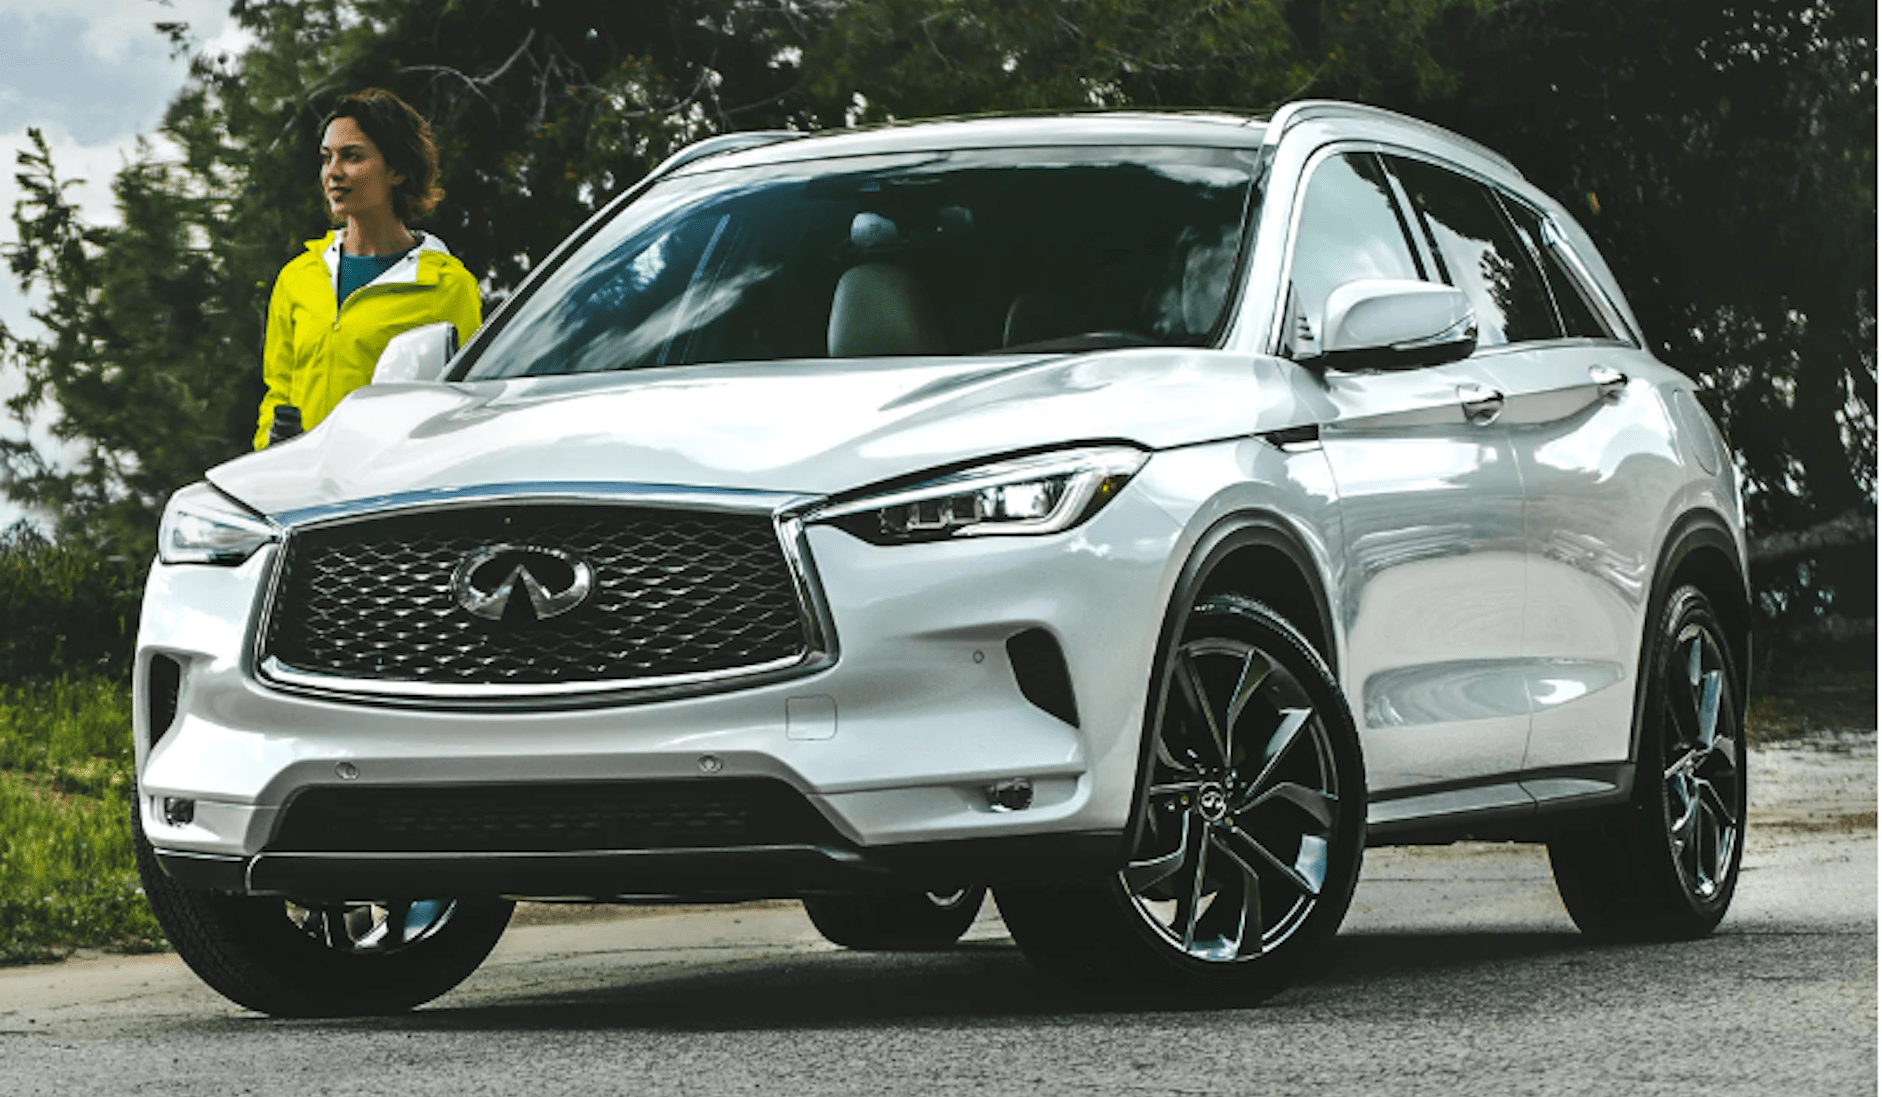 2020 INFINITI QX50 for sale near Mobile, AL